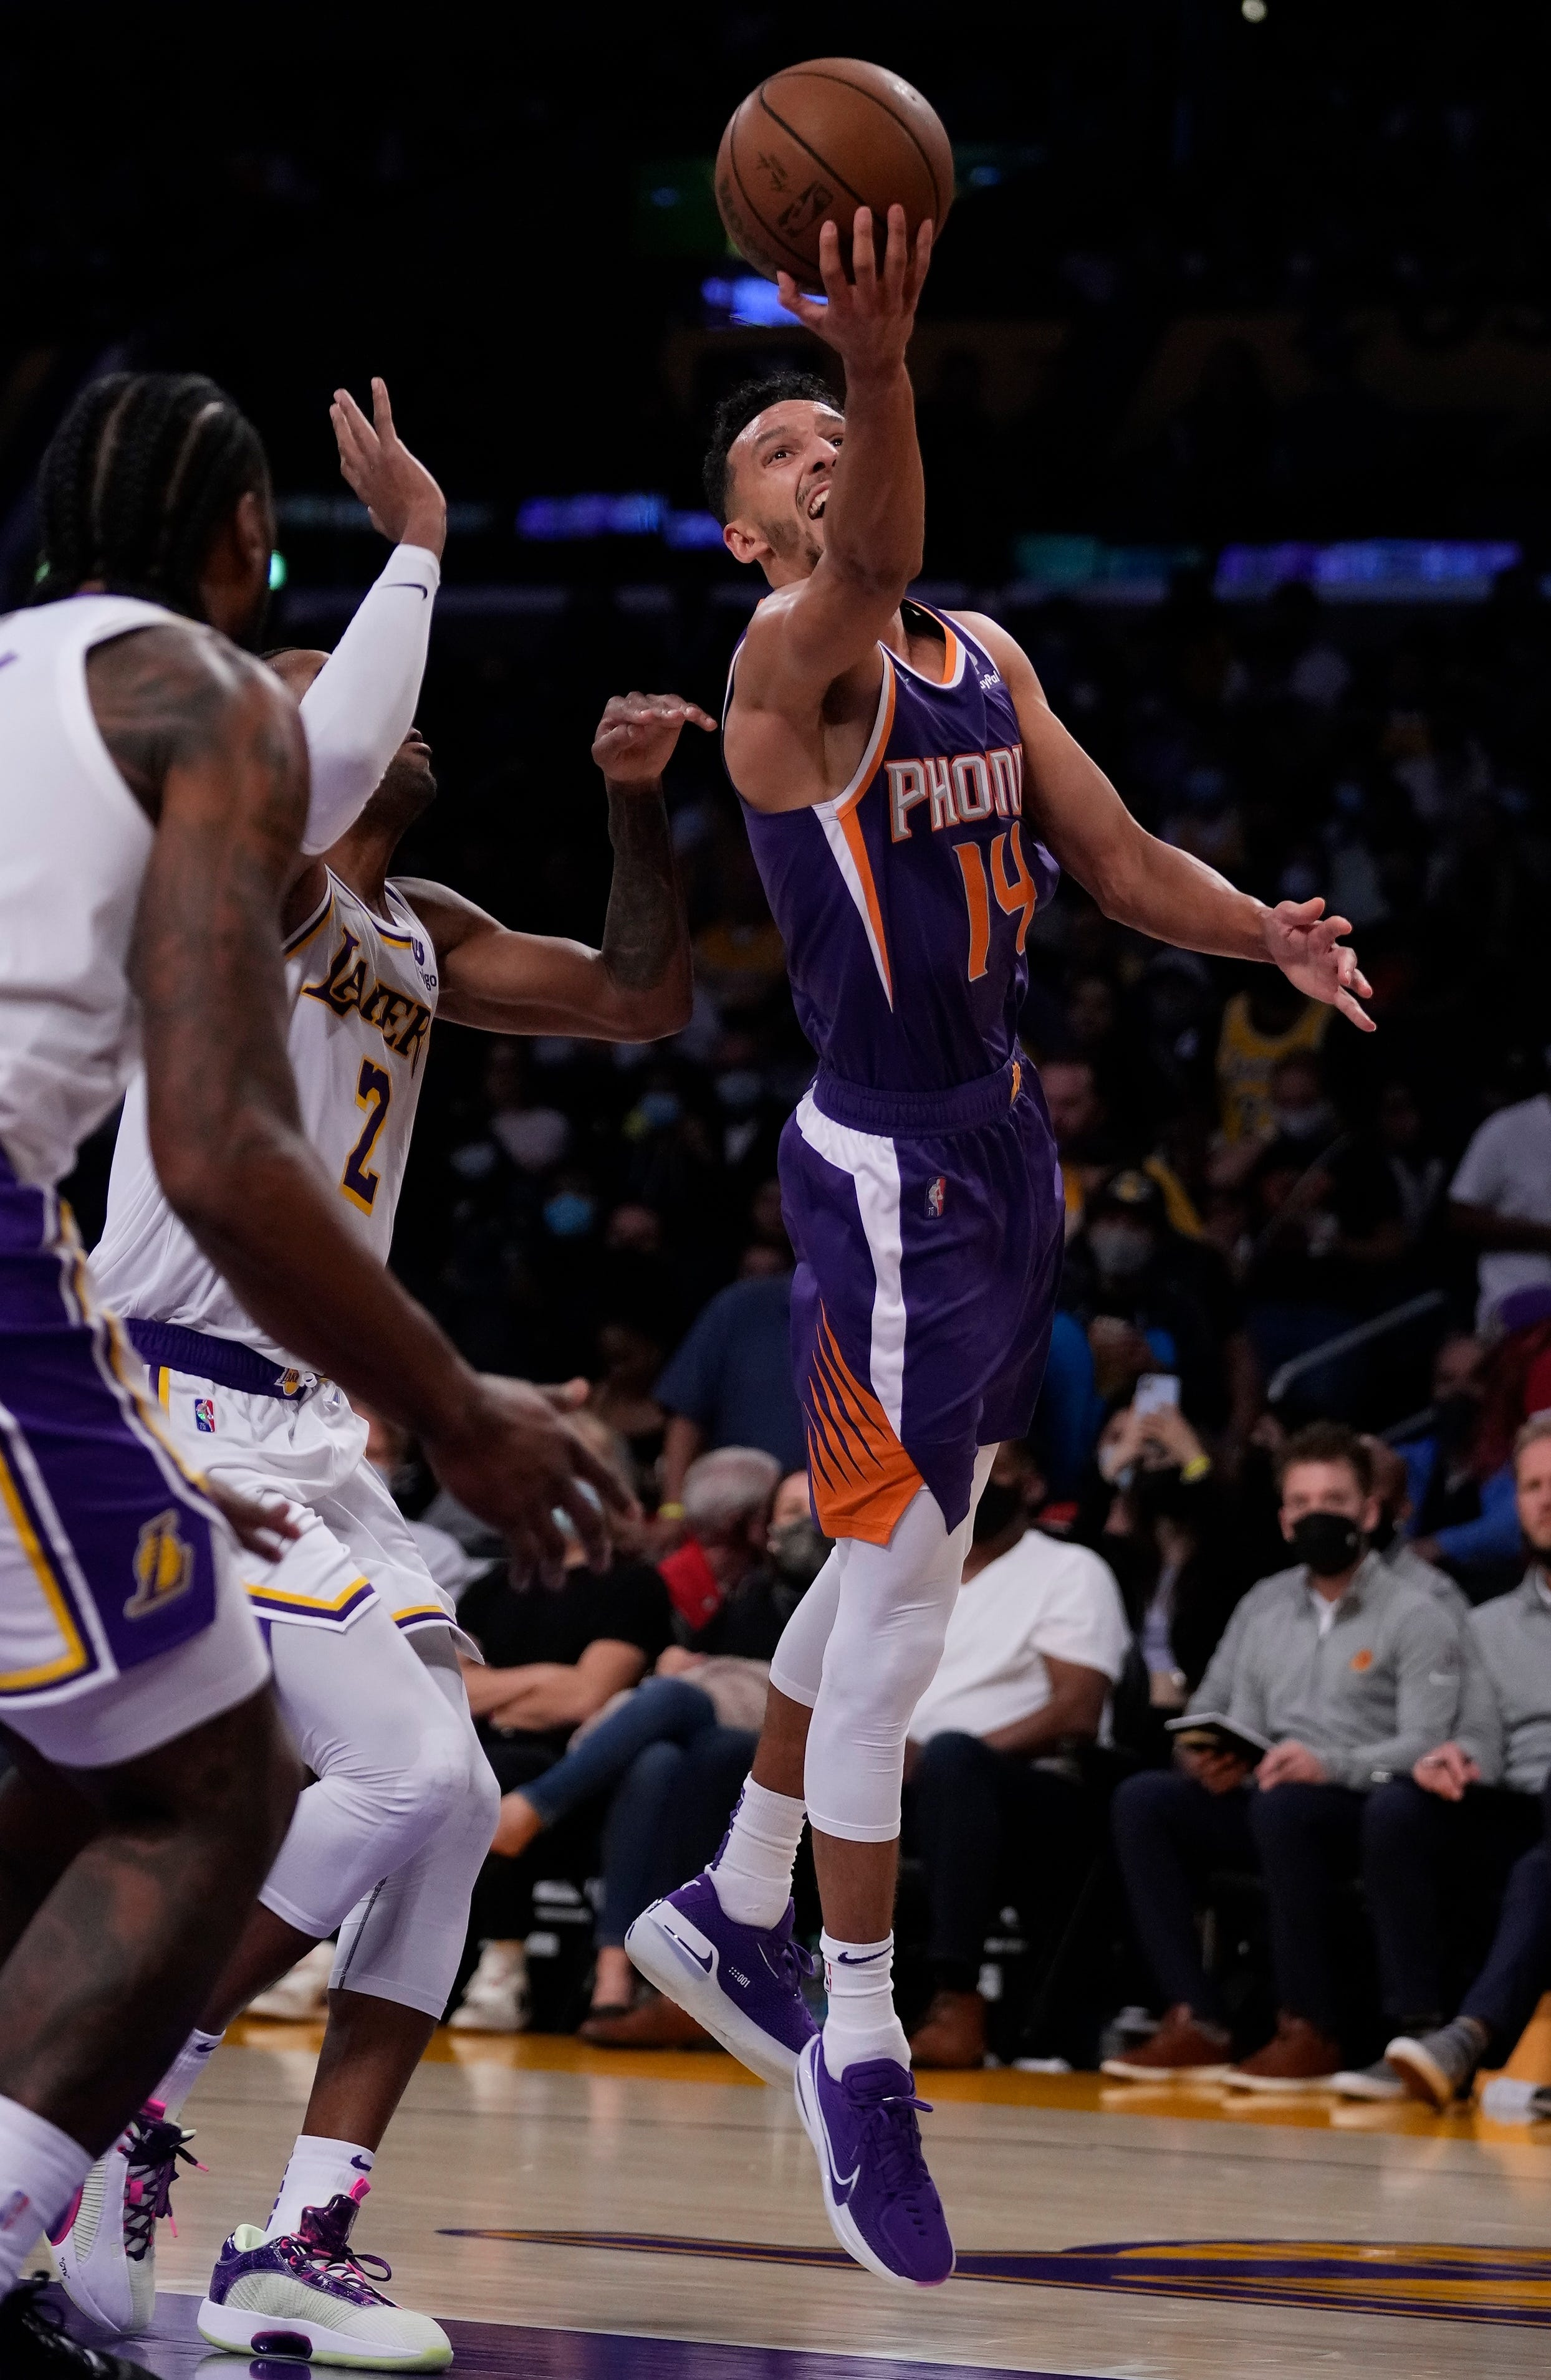 Report: Landry Shamet, Phoenix Suns agree to four-year, $43M rookie extension